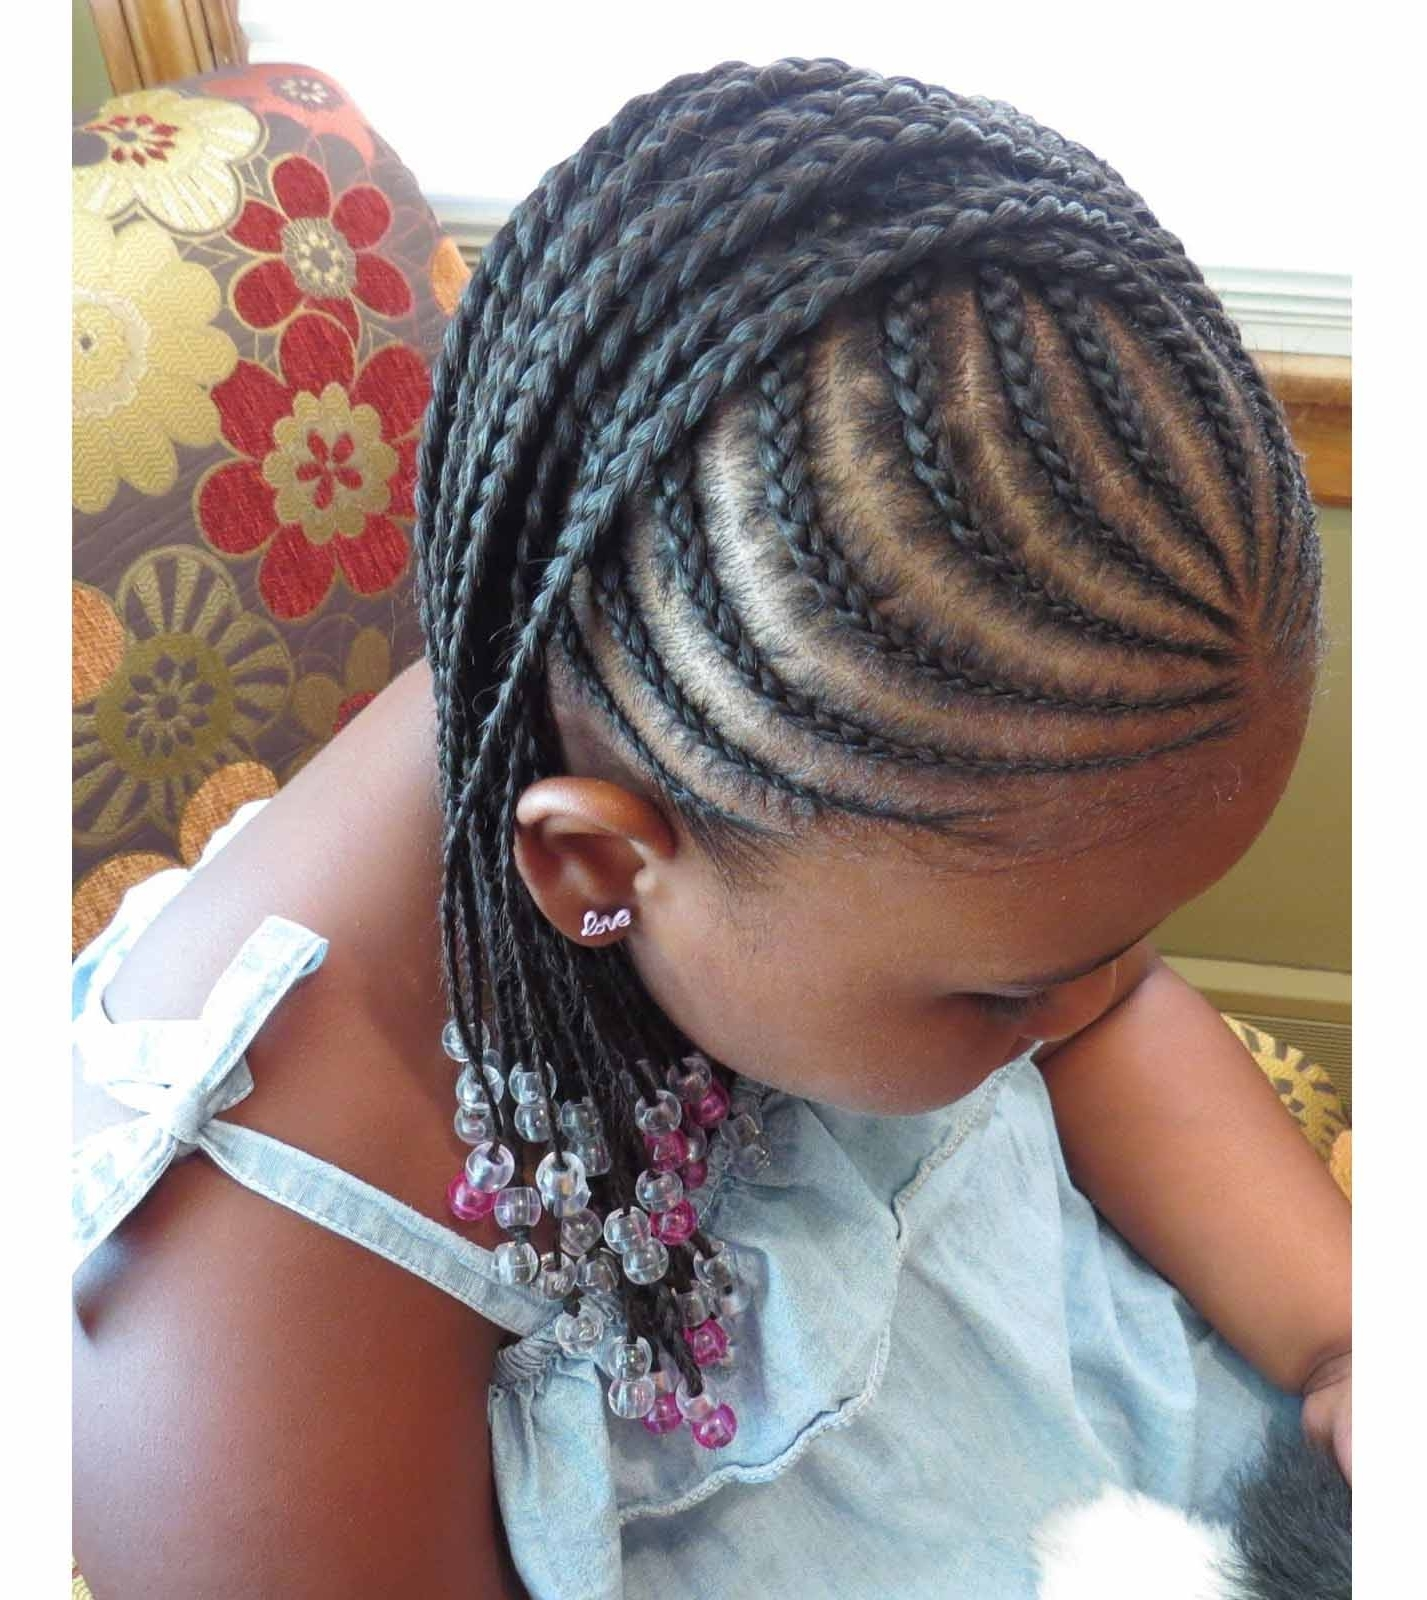 64 Cool Braided Hairstyles For Little Black Girls – Page 2 – Hairstyles Pertaining To Famous Braided Hairstyles For Girls (View 5 of 15)